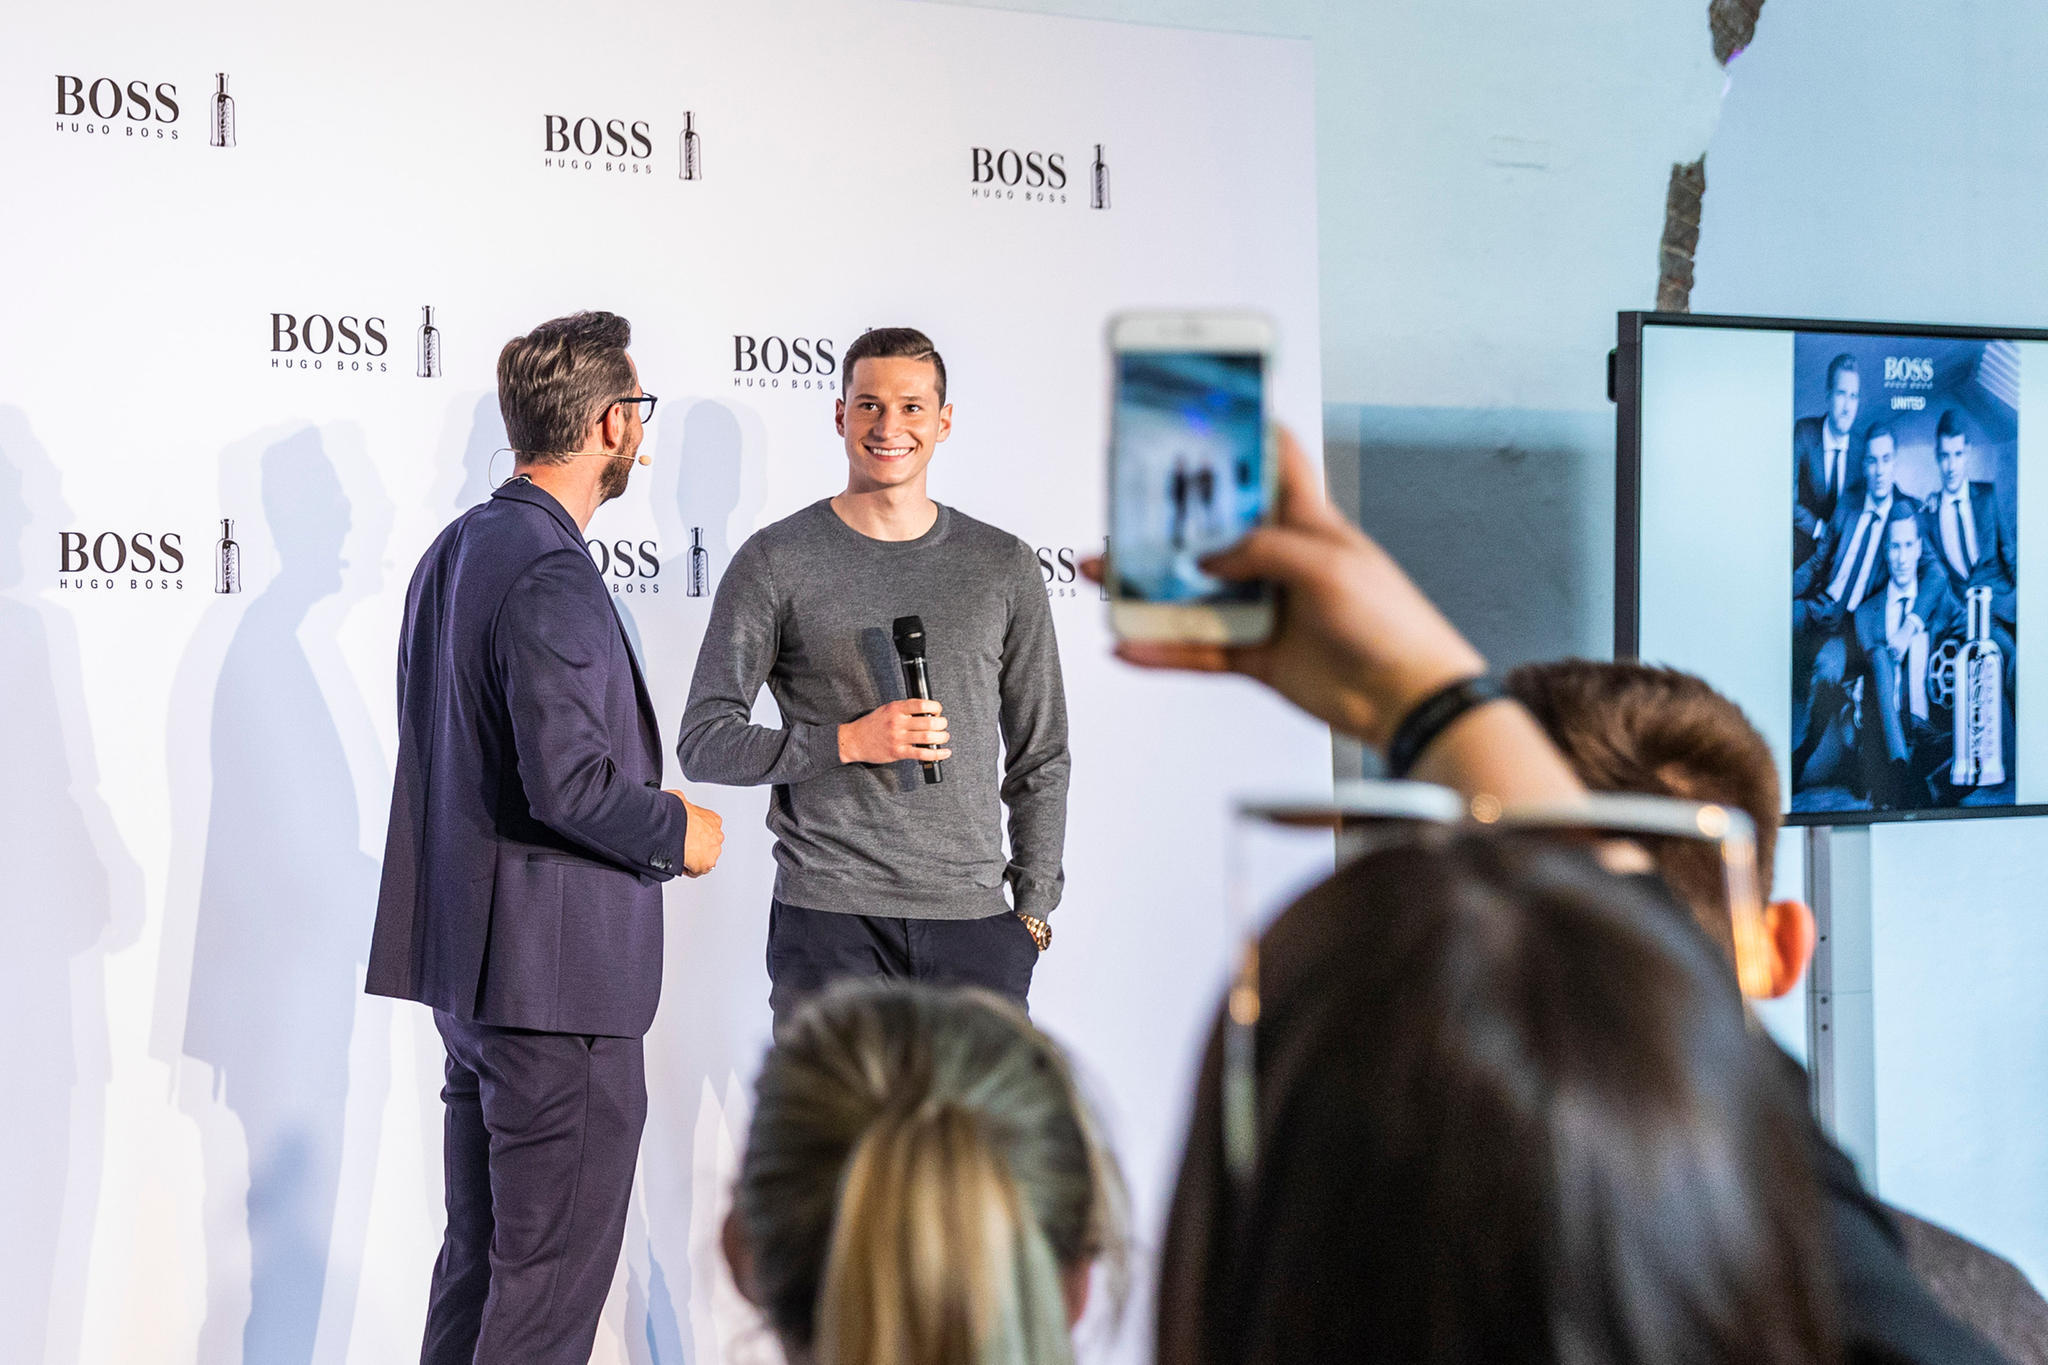 Julian Draxler beim Event zum Duft BOSS Bottled United.